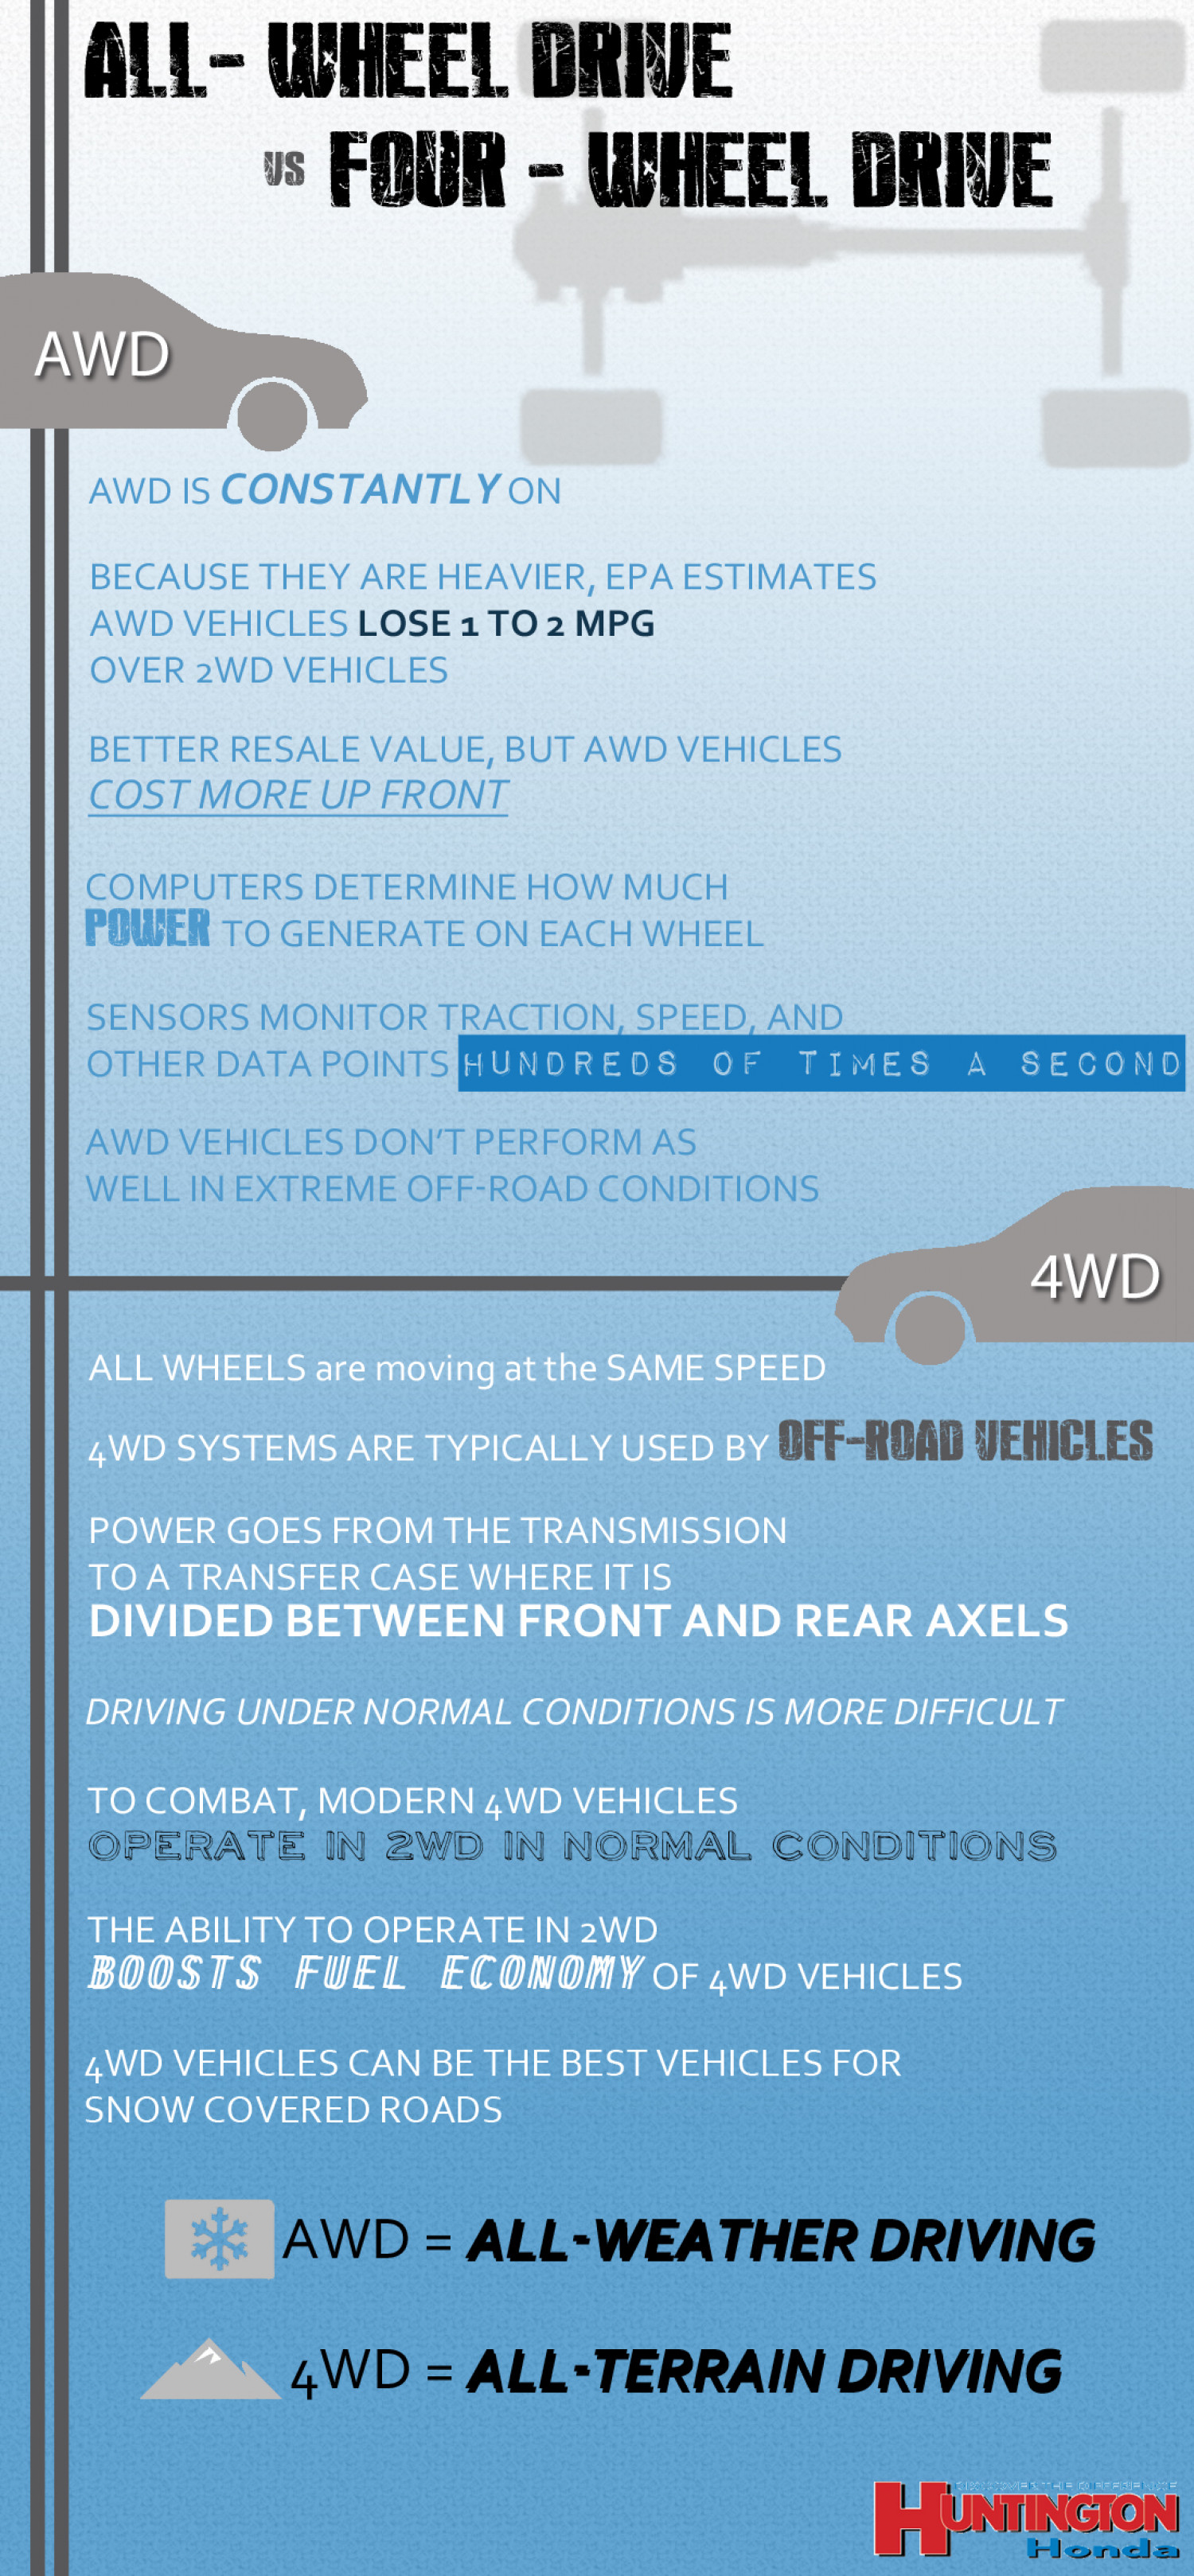 All-Wheel Drive vs. Four-Wheel Drive Infographic